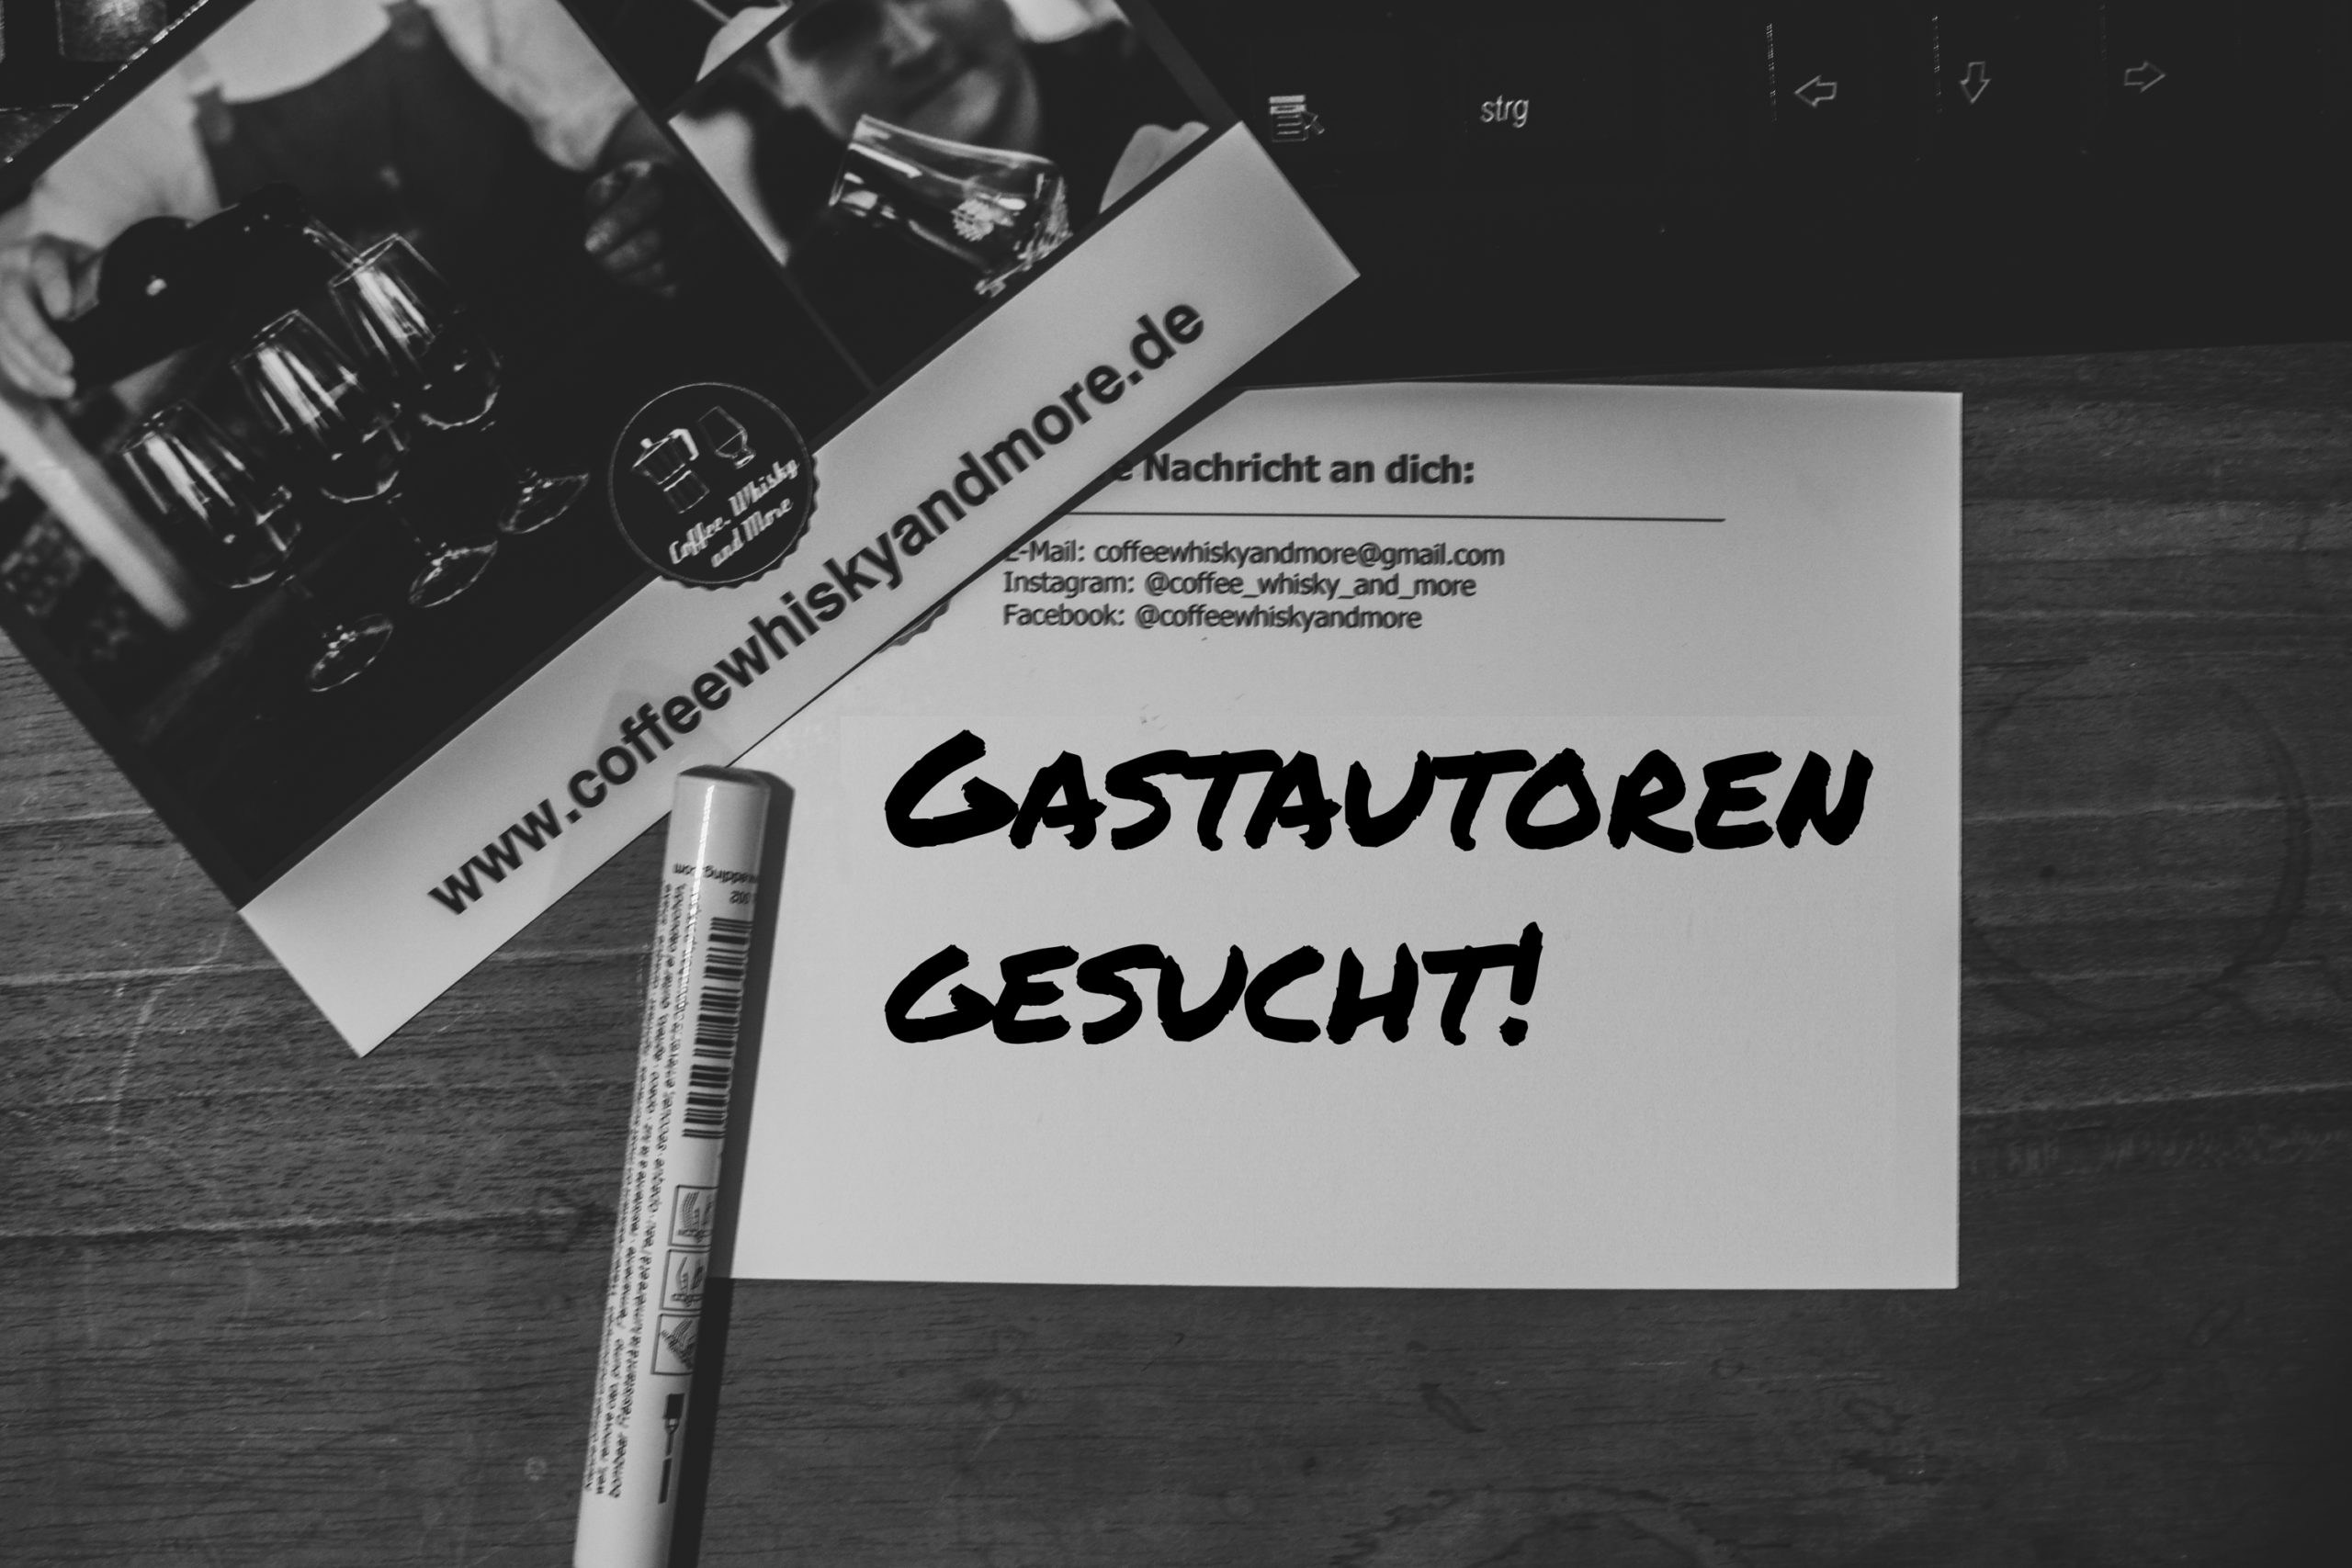 Gastautor bei Coffee, Whisky and More | We want you!